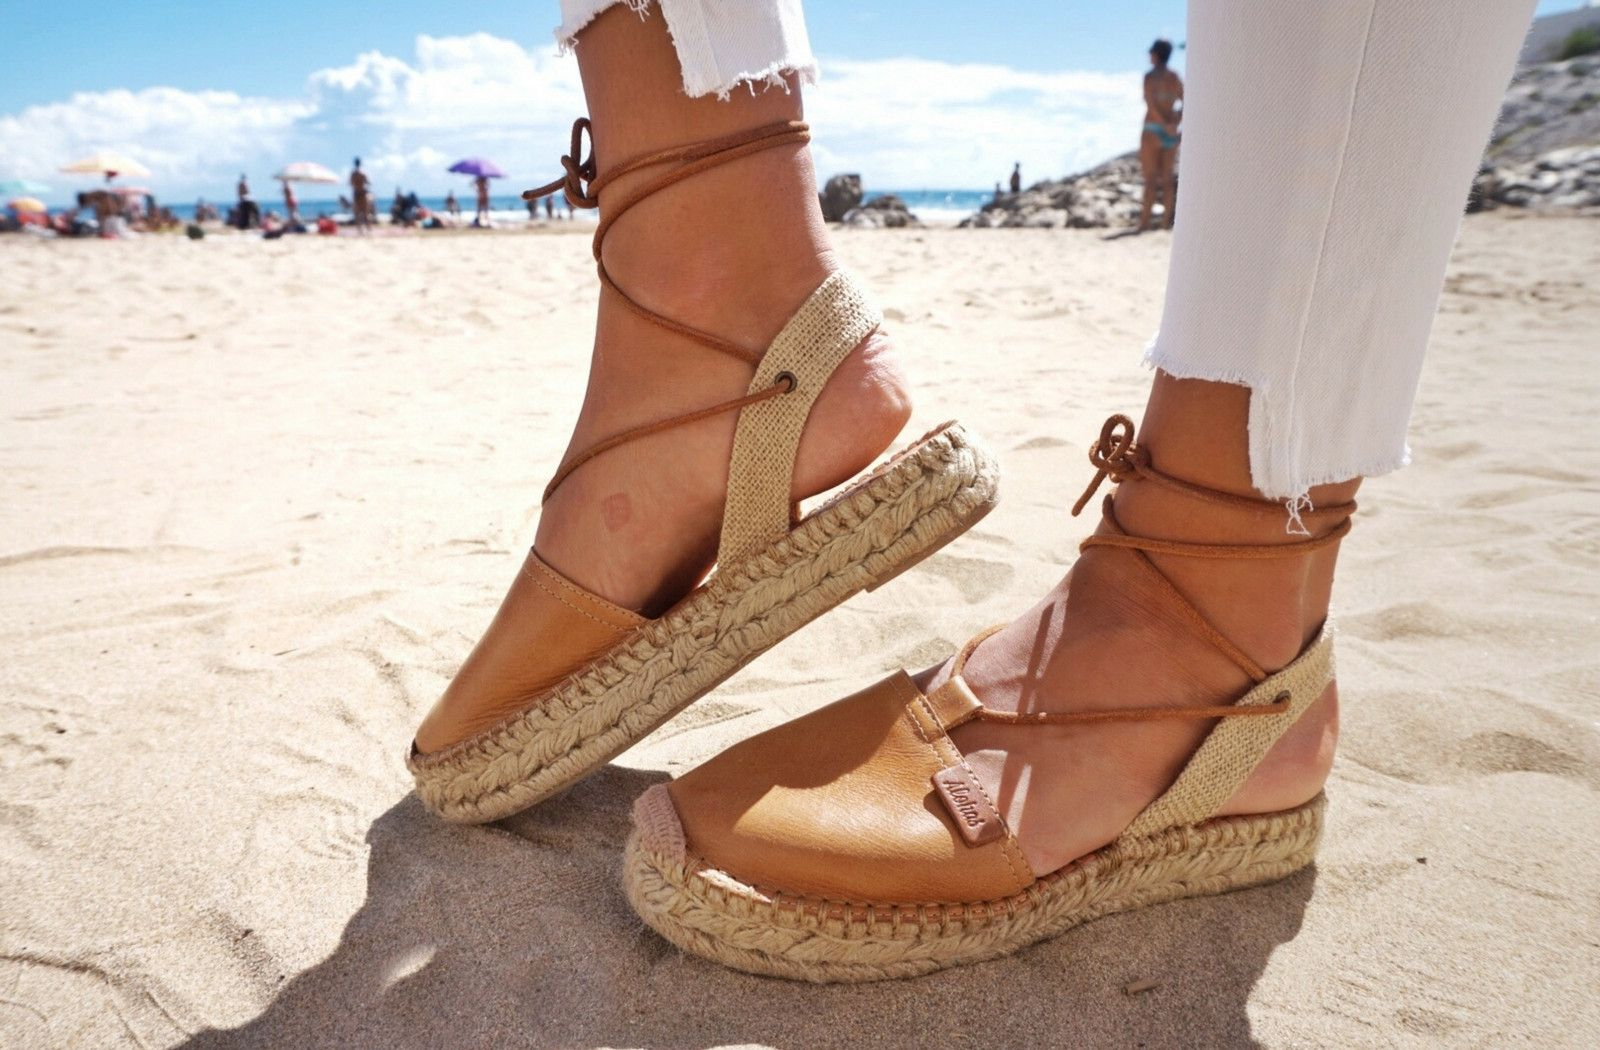 Alohas Sandals, step by step inspiring a fun and sustainable lifestyle.  Handmade platform espadrilles